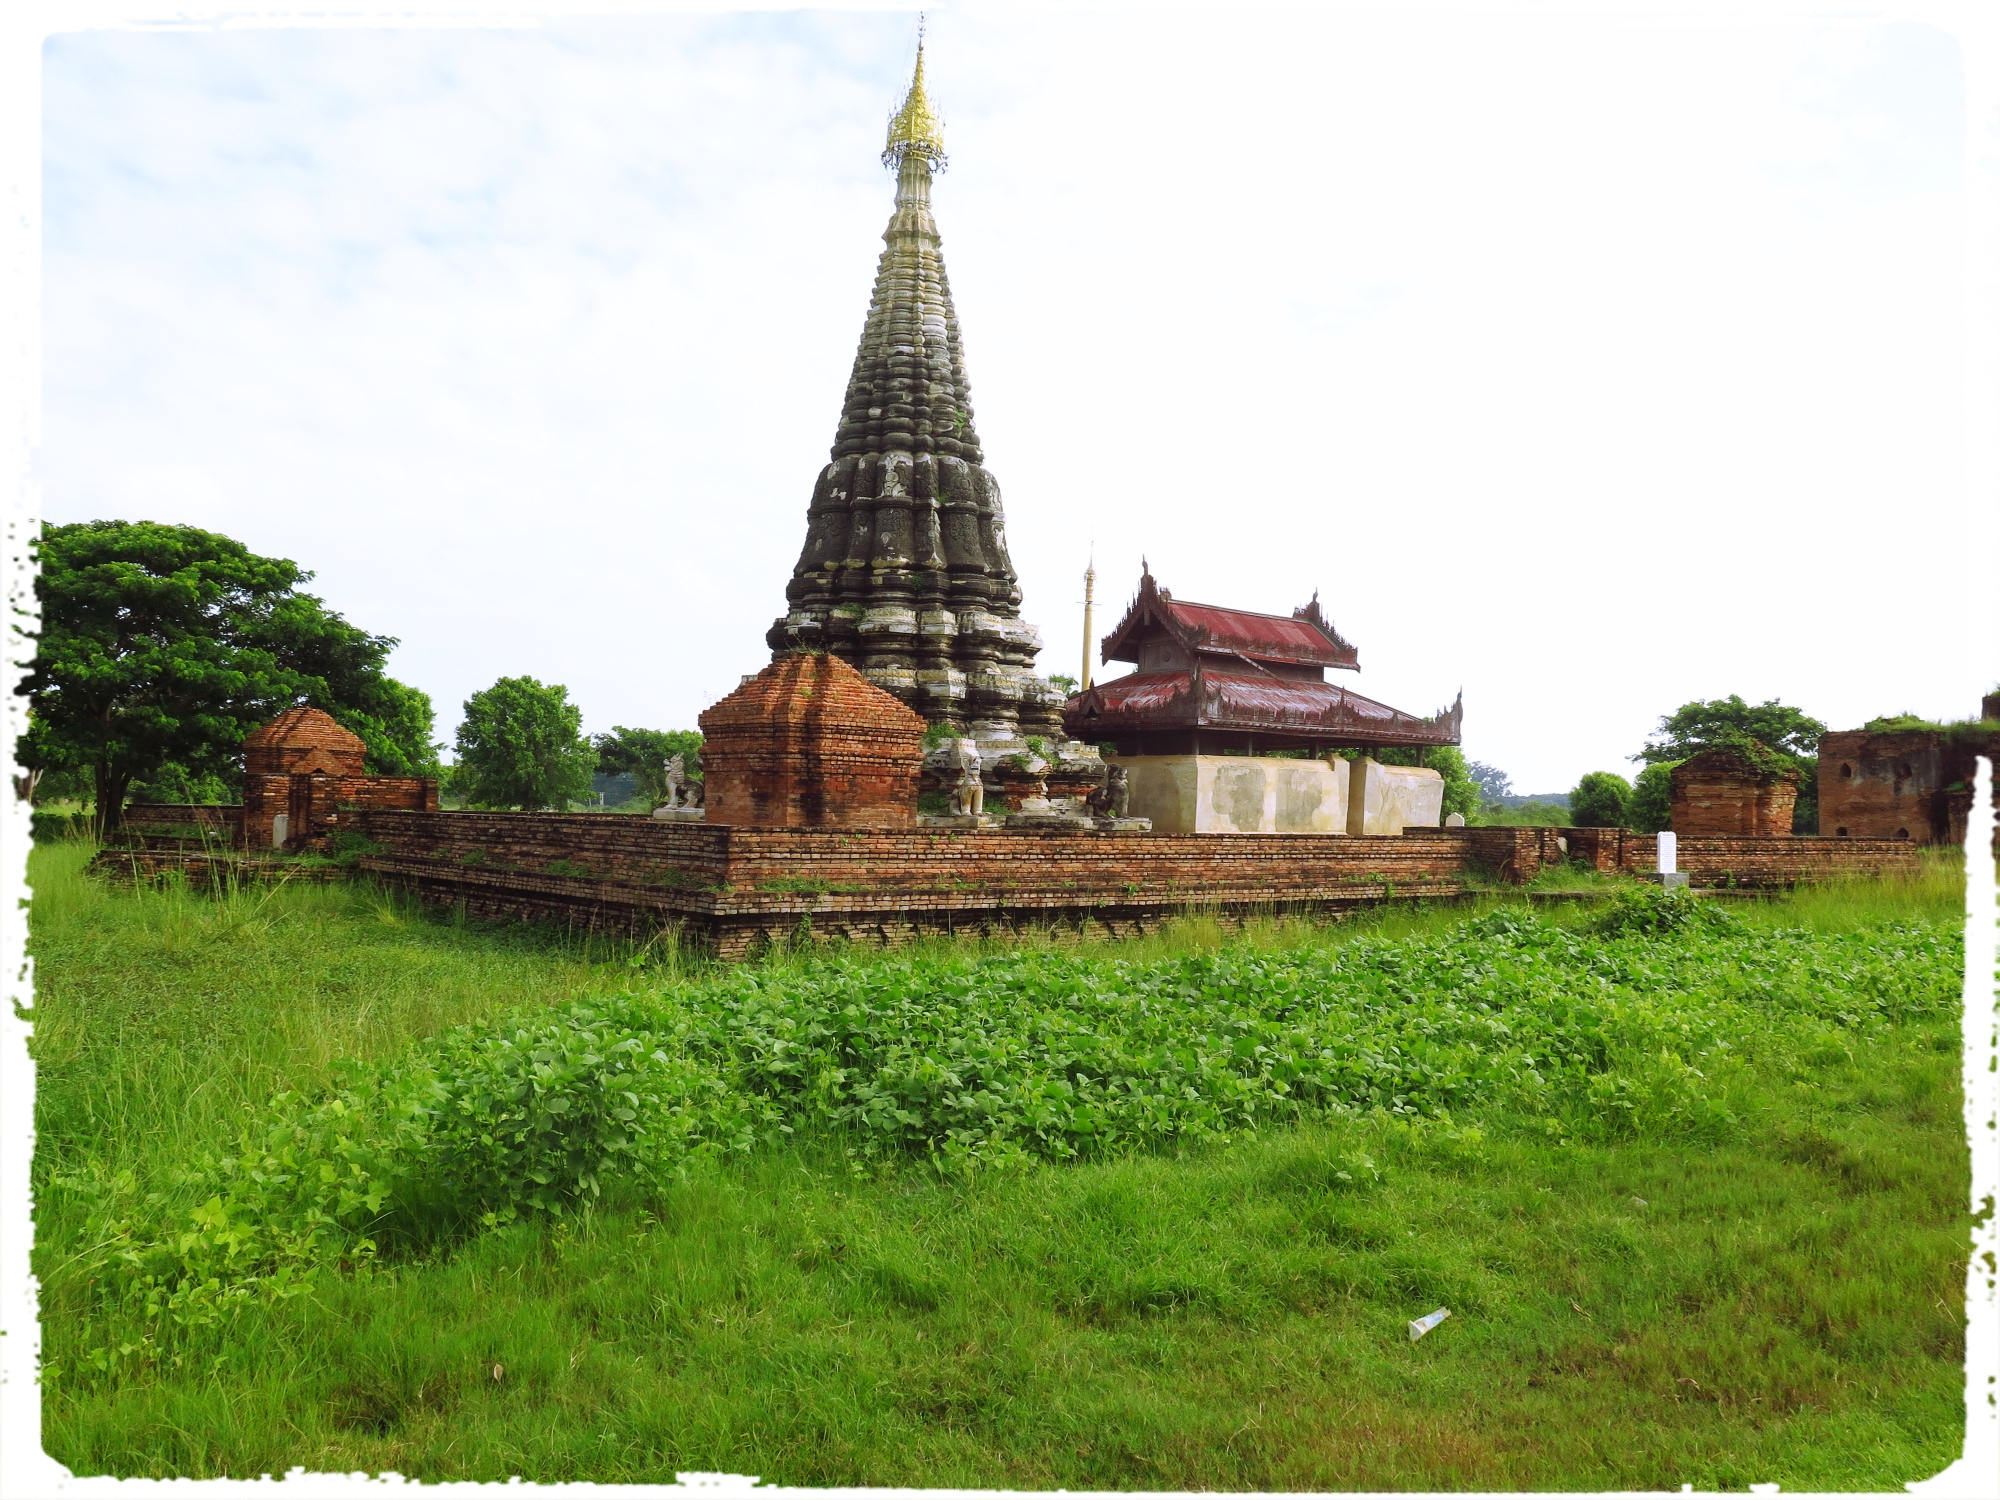 The spired stupa is the Lawka Dawtha Man Aung Pagoda. The Pagoda encloses a small shrine with a statue of Buddha in a small building nearby. The Pagodas house relics but not always one is able to find original relics and house them. Many Pagodas have housed replica of the relics and have drawn the faithful.